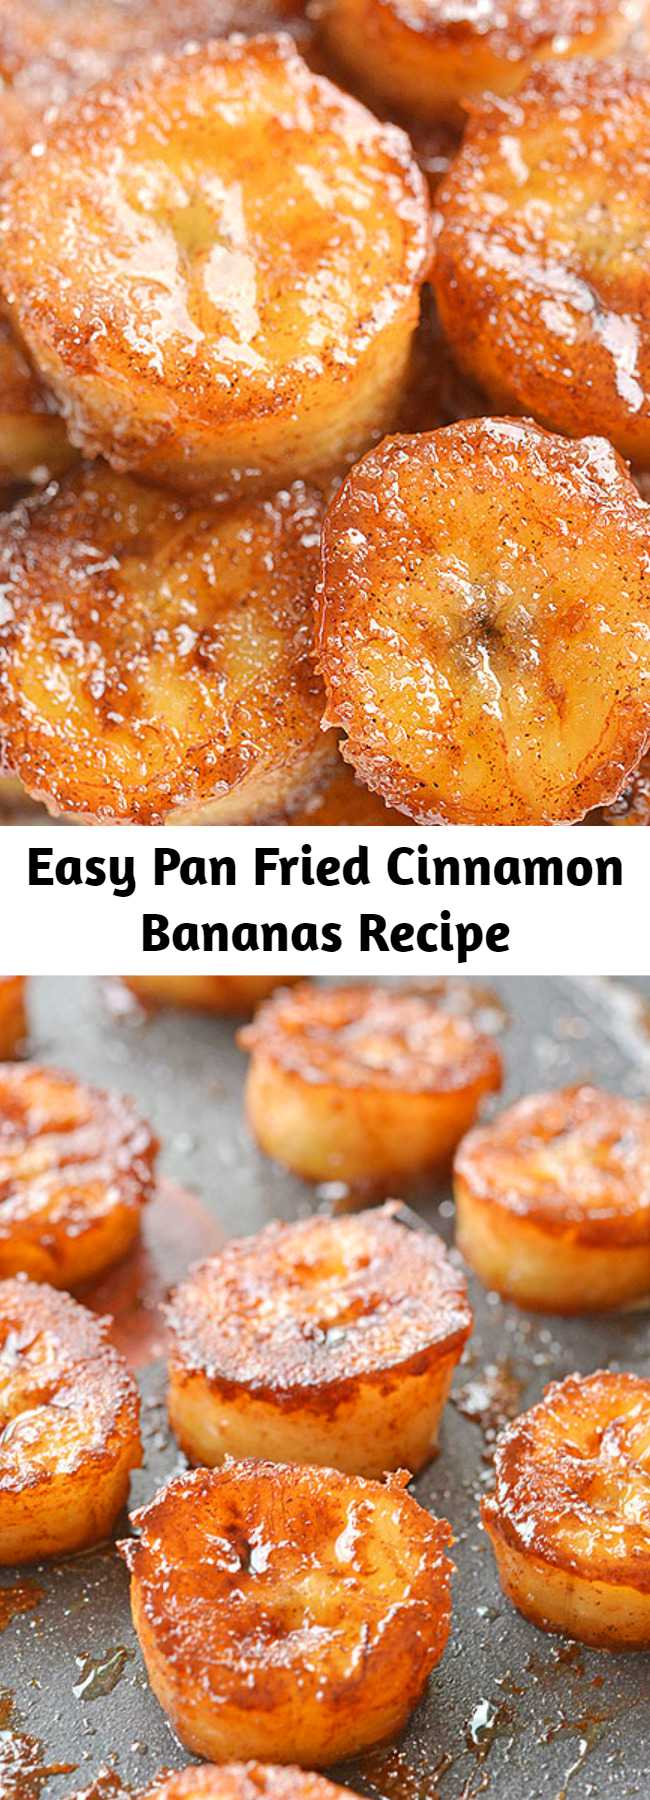 Easy Pan Fried Cinnamon Bananas Recipe - These pan fried cinnamon bananas are so easy to make and taste SO GOOD! They're amazing (seriously AMAZING) on ice cream or pancakes, or just as a snack. Soft and sweet on the inside and caramelized on the outside.